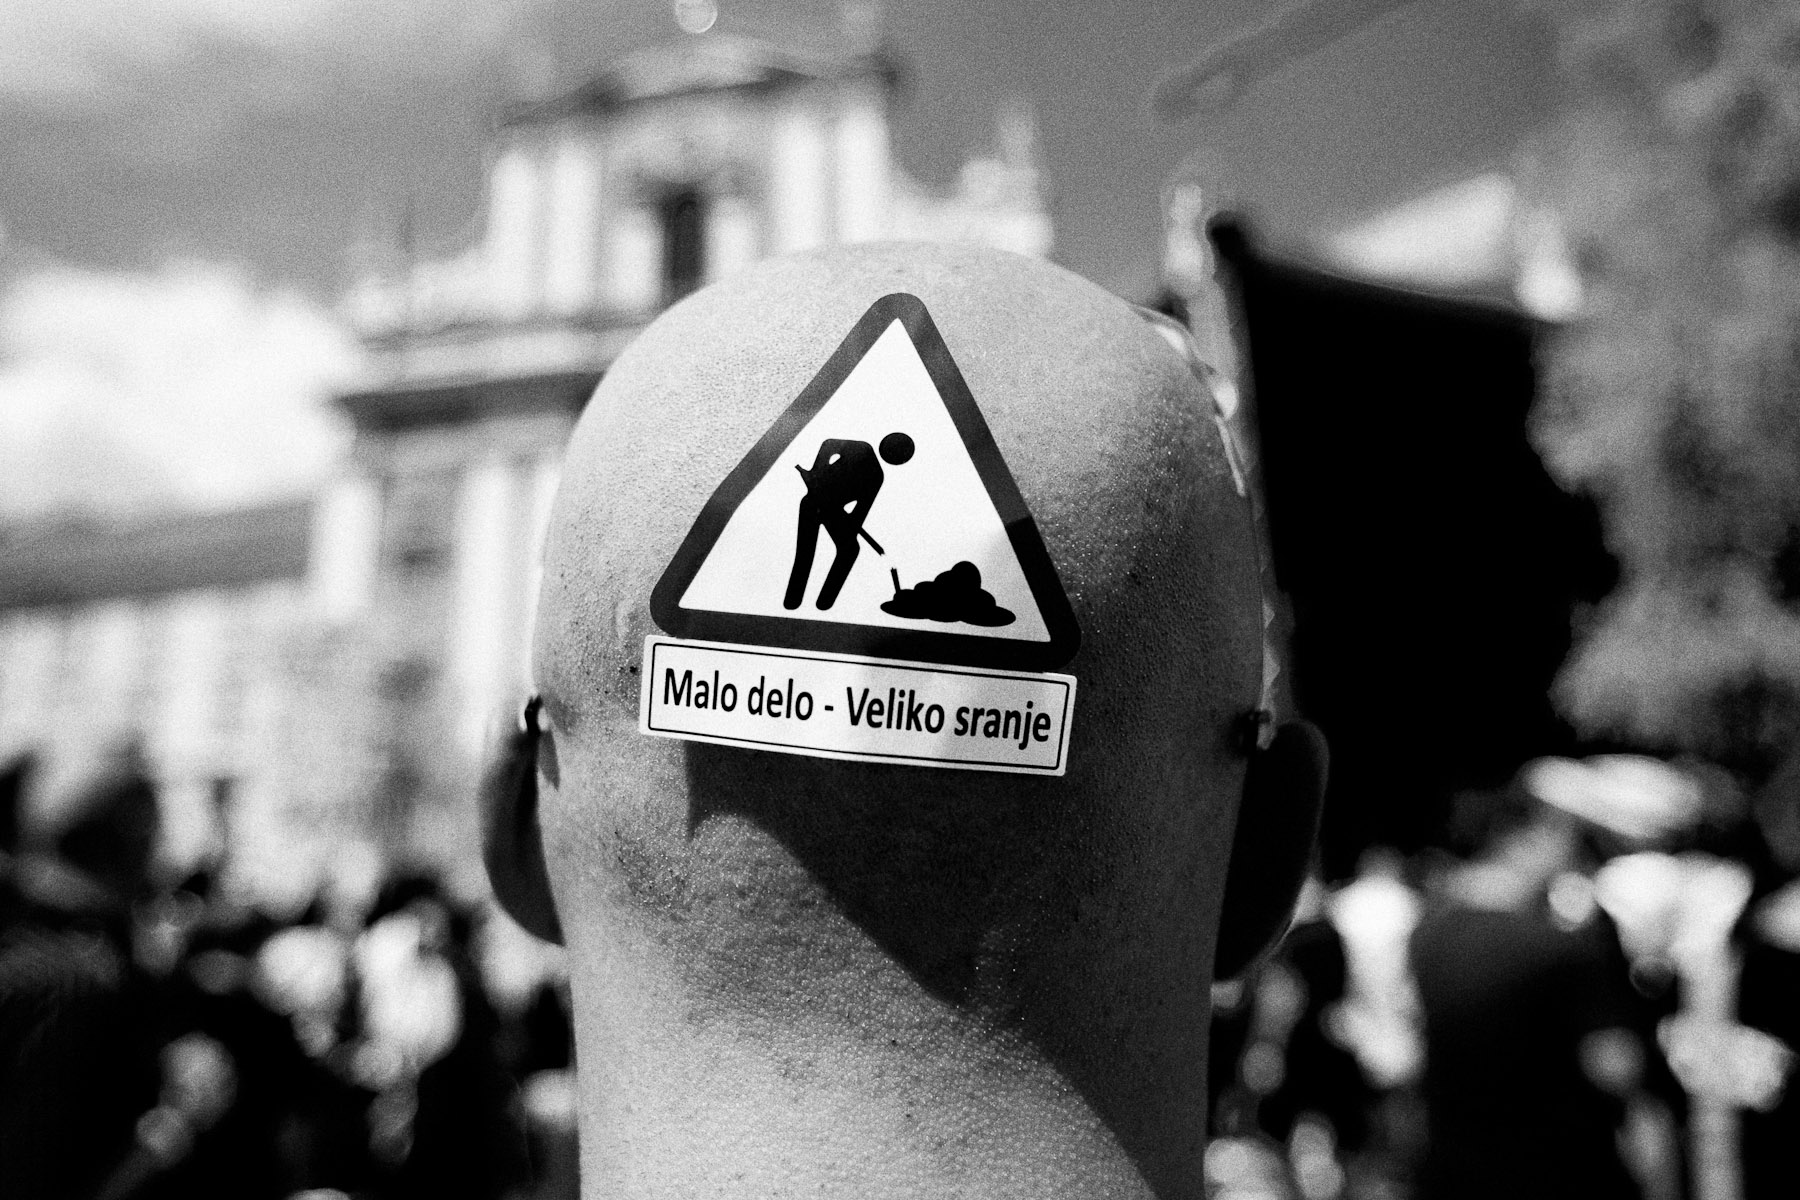 A protester wears an anti-government sticker on his head during a protest in Prešeren Square in Ljubljana, May 19, 2010. The sticker reads: Small labour - big shit.